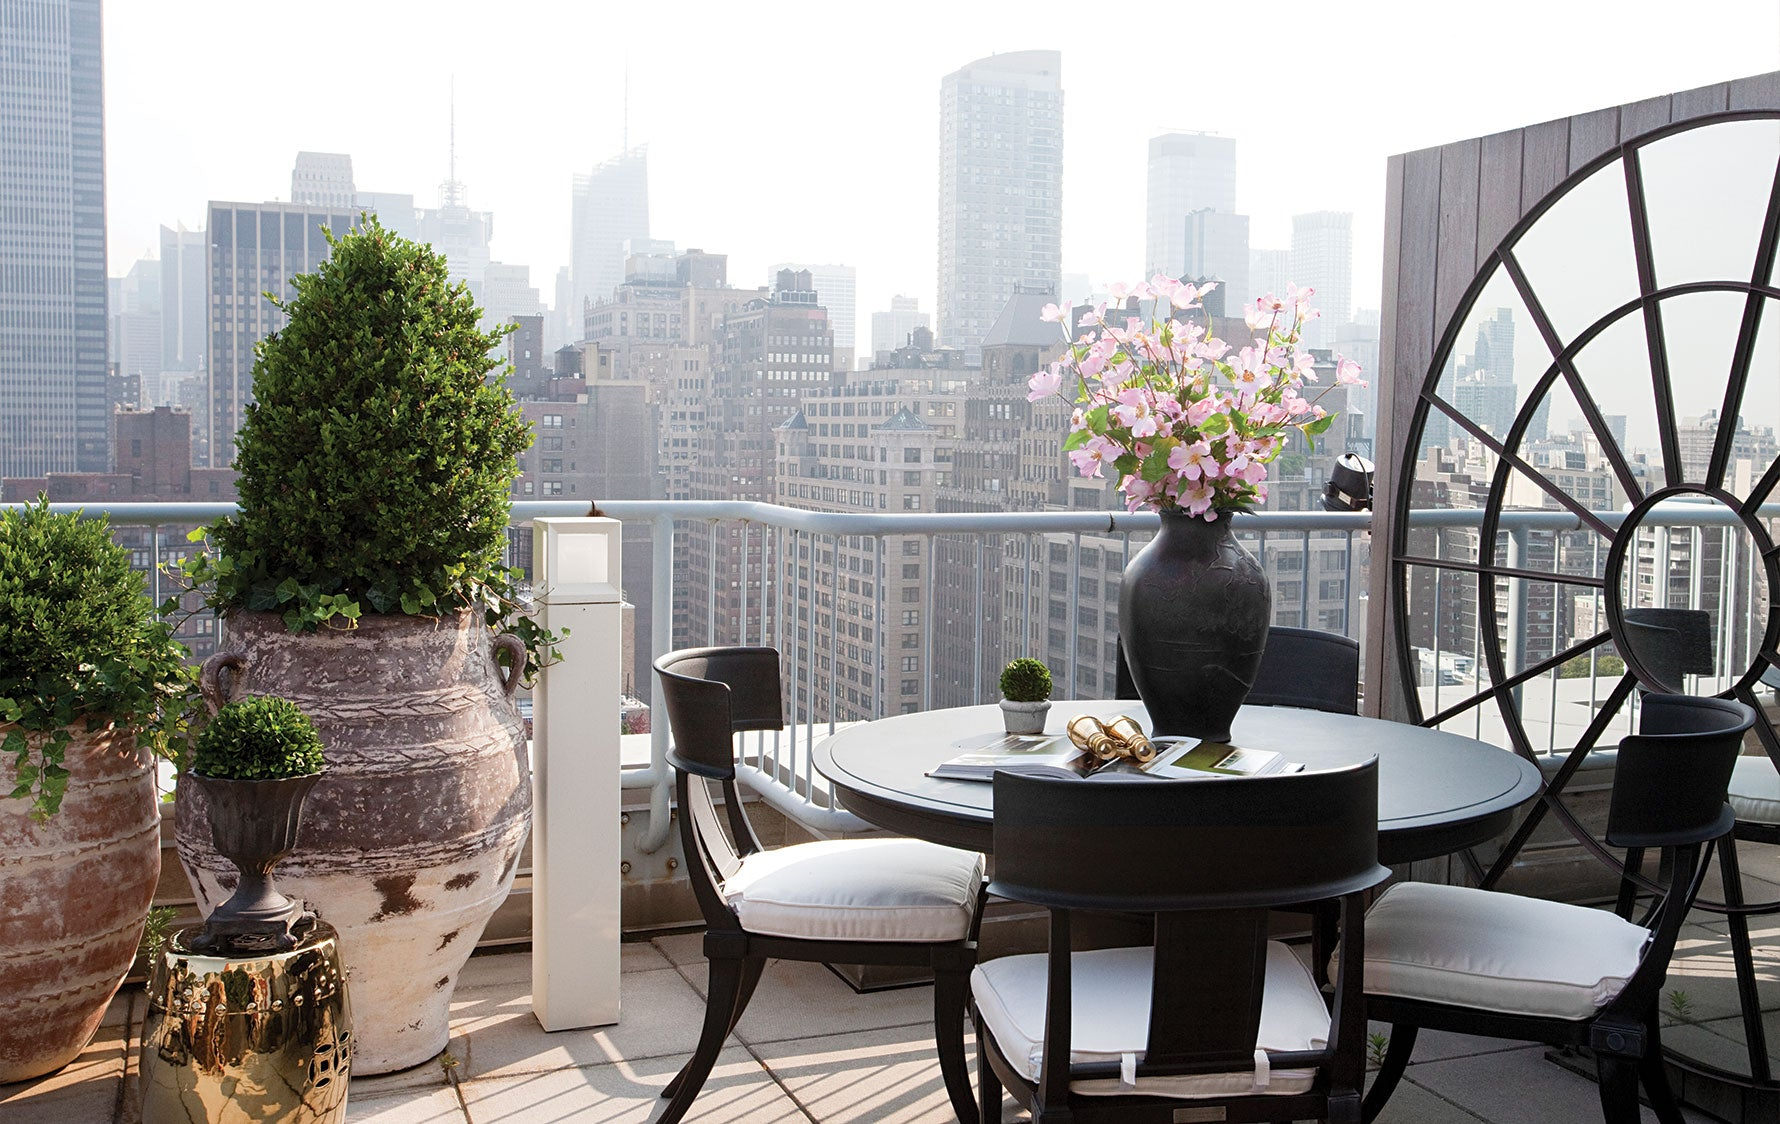 New York Terrace, Outdoor Space Ideas |Carlyle Designs| Read more in The Luxurist | LuxDeco.com